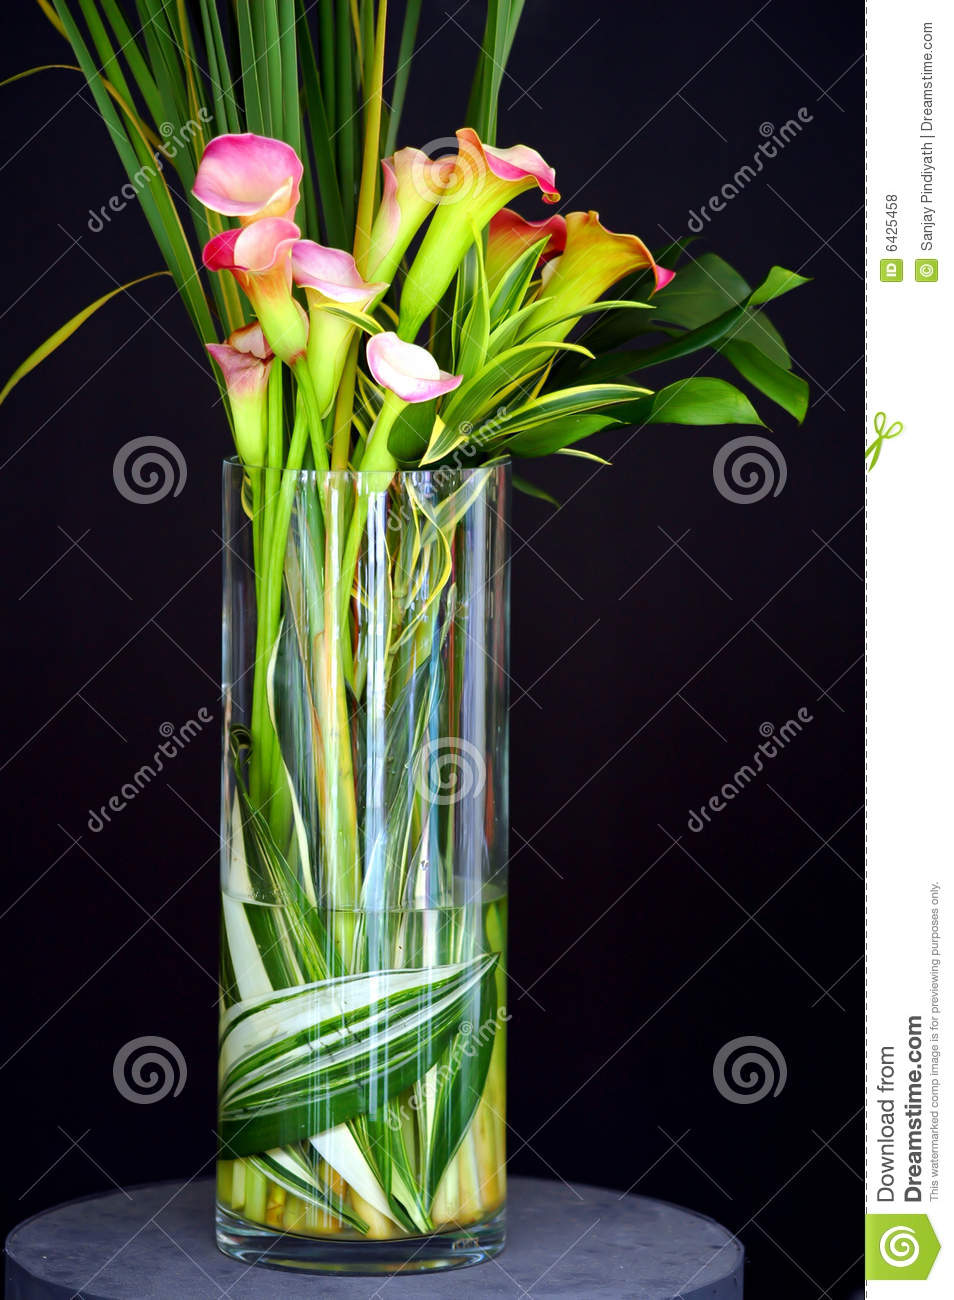 Calla lilies in vase stock photo image of tropical elegant 6425458 calla lilies in vase reviewsmspy